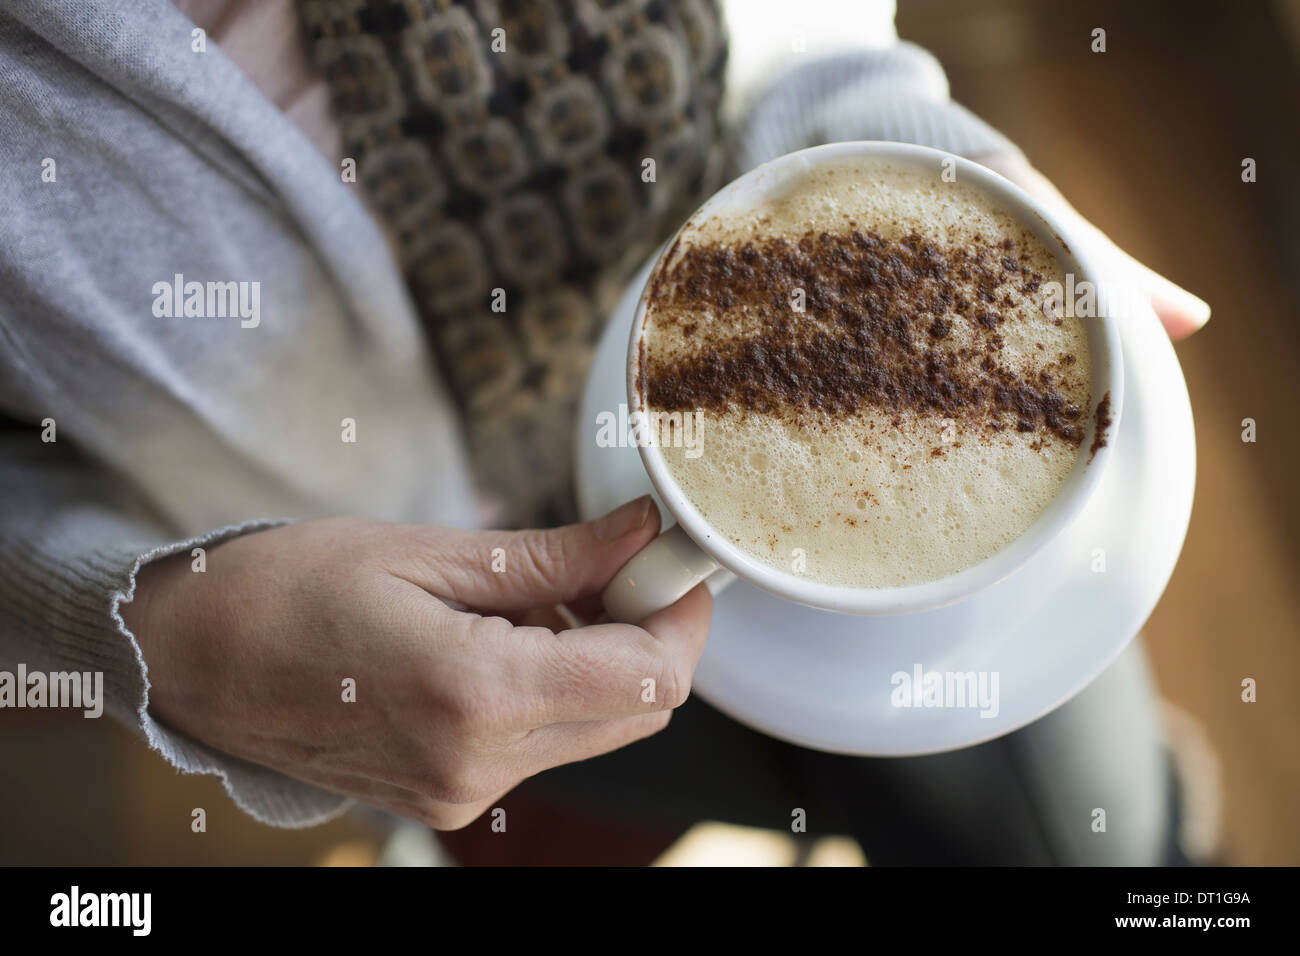 A person holding a full cup of frothy cappuccino coffee in a white china cup Chocolate powder sprinkled in a pattern - Stock Image